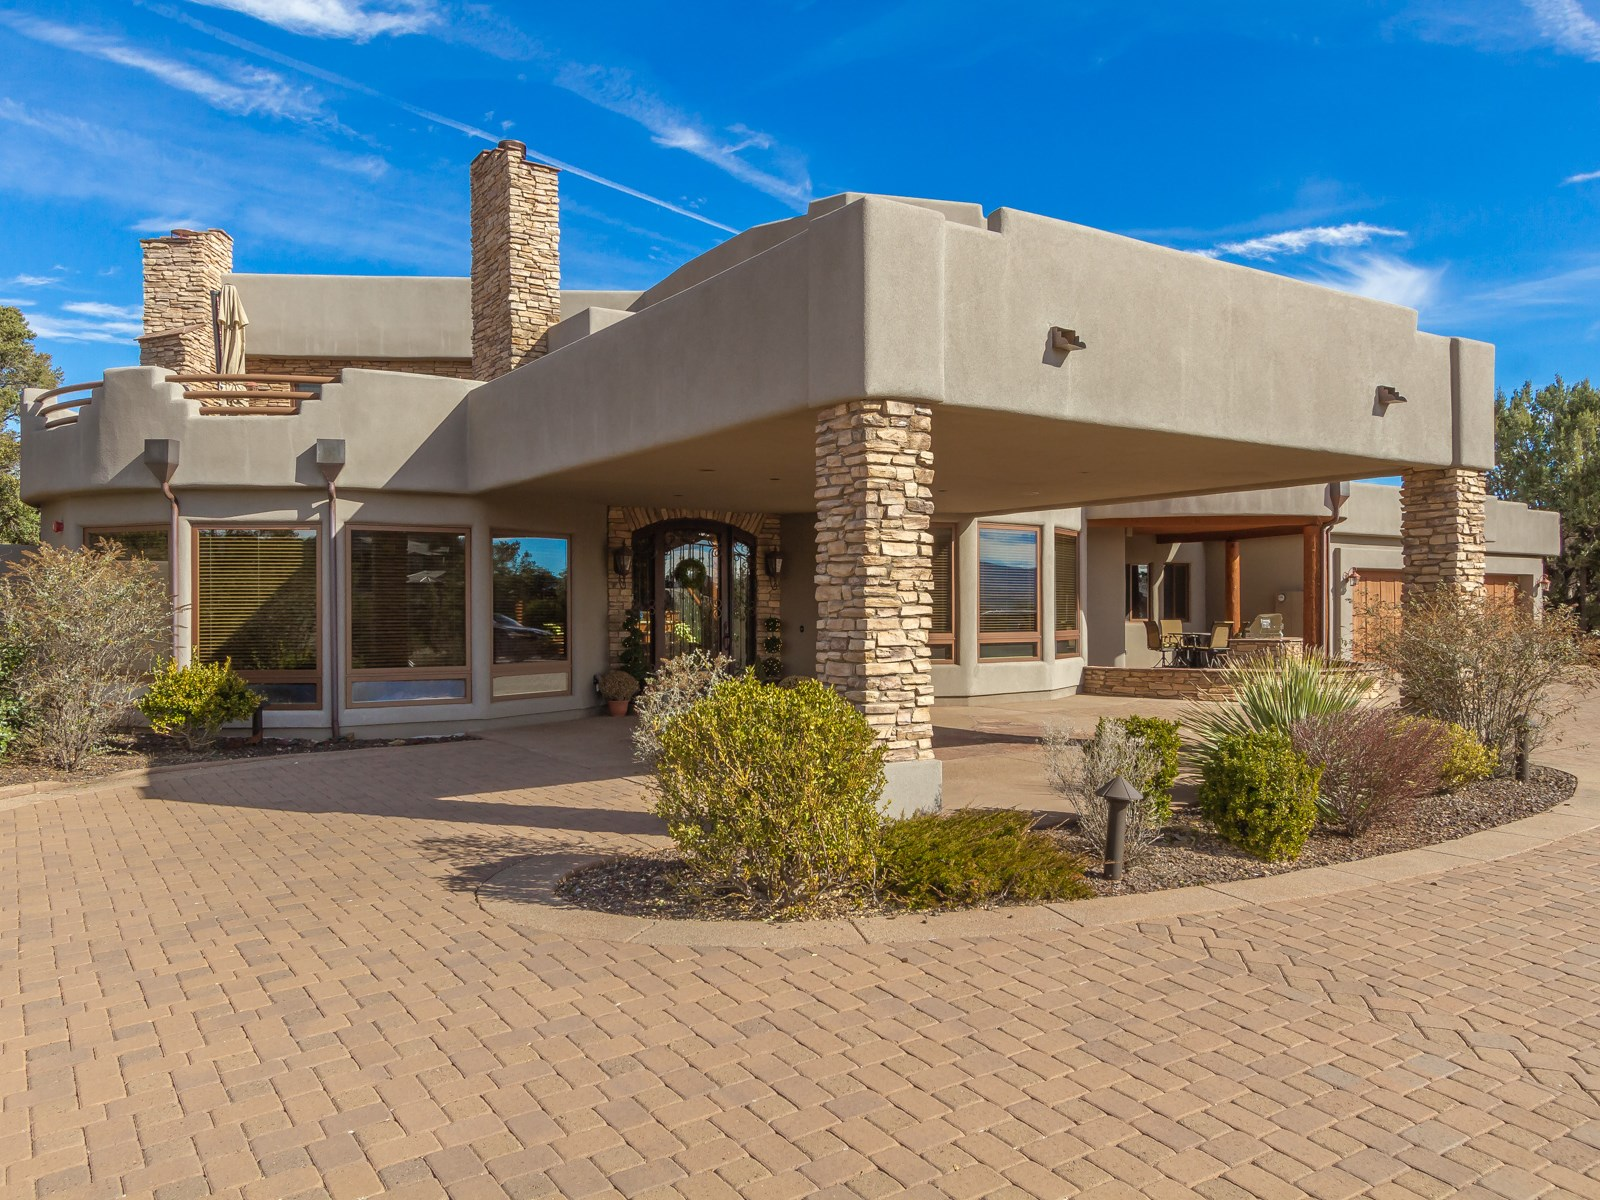 Single Family Home for Sale at Stunning Contemporary Home 1341 Sierry Peaks Drive Prescott, Arizona, 86305 United States